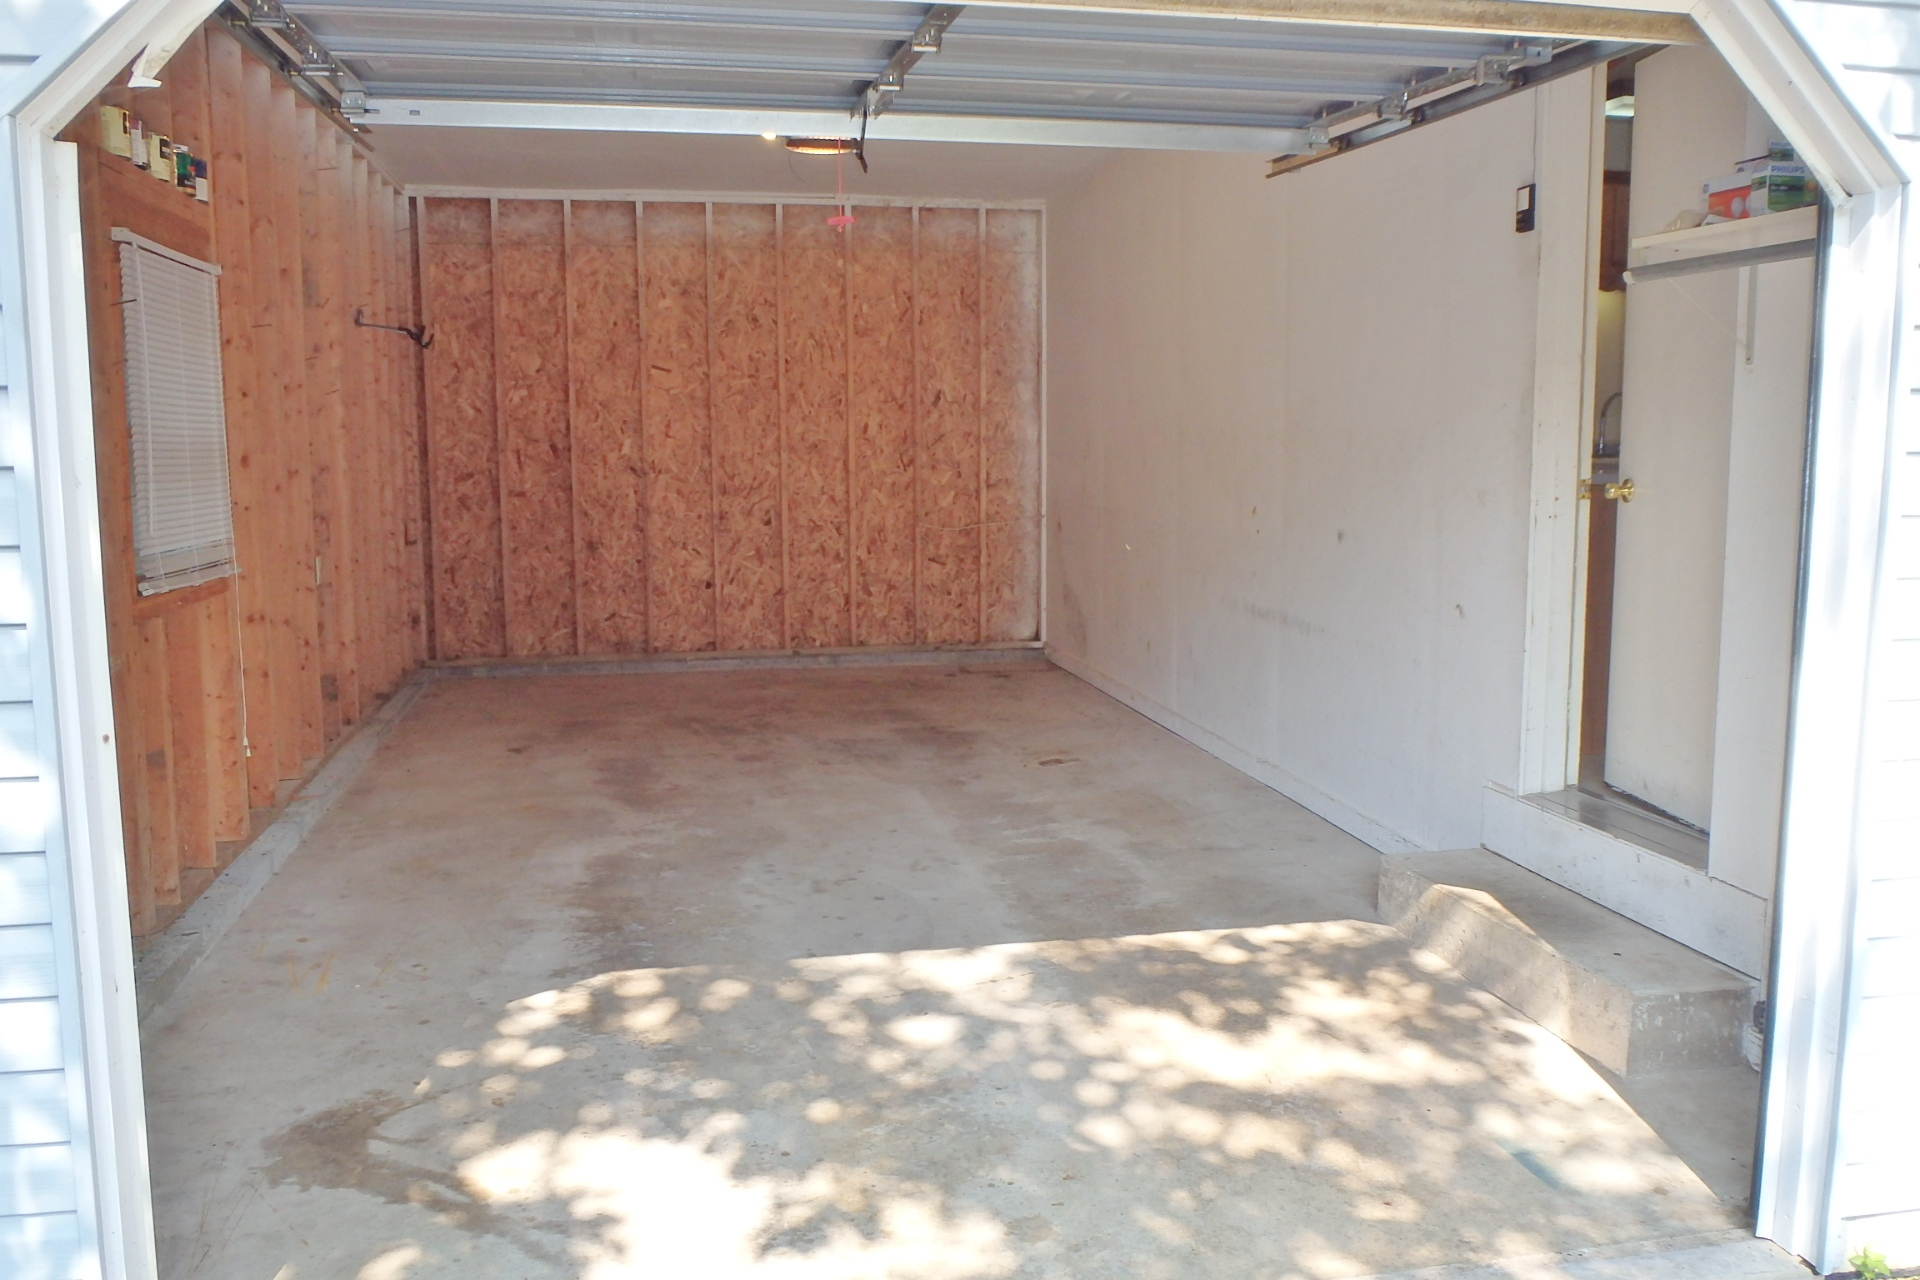 Garage at 317 Ghaner Drive.